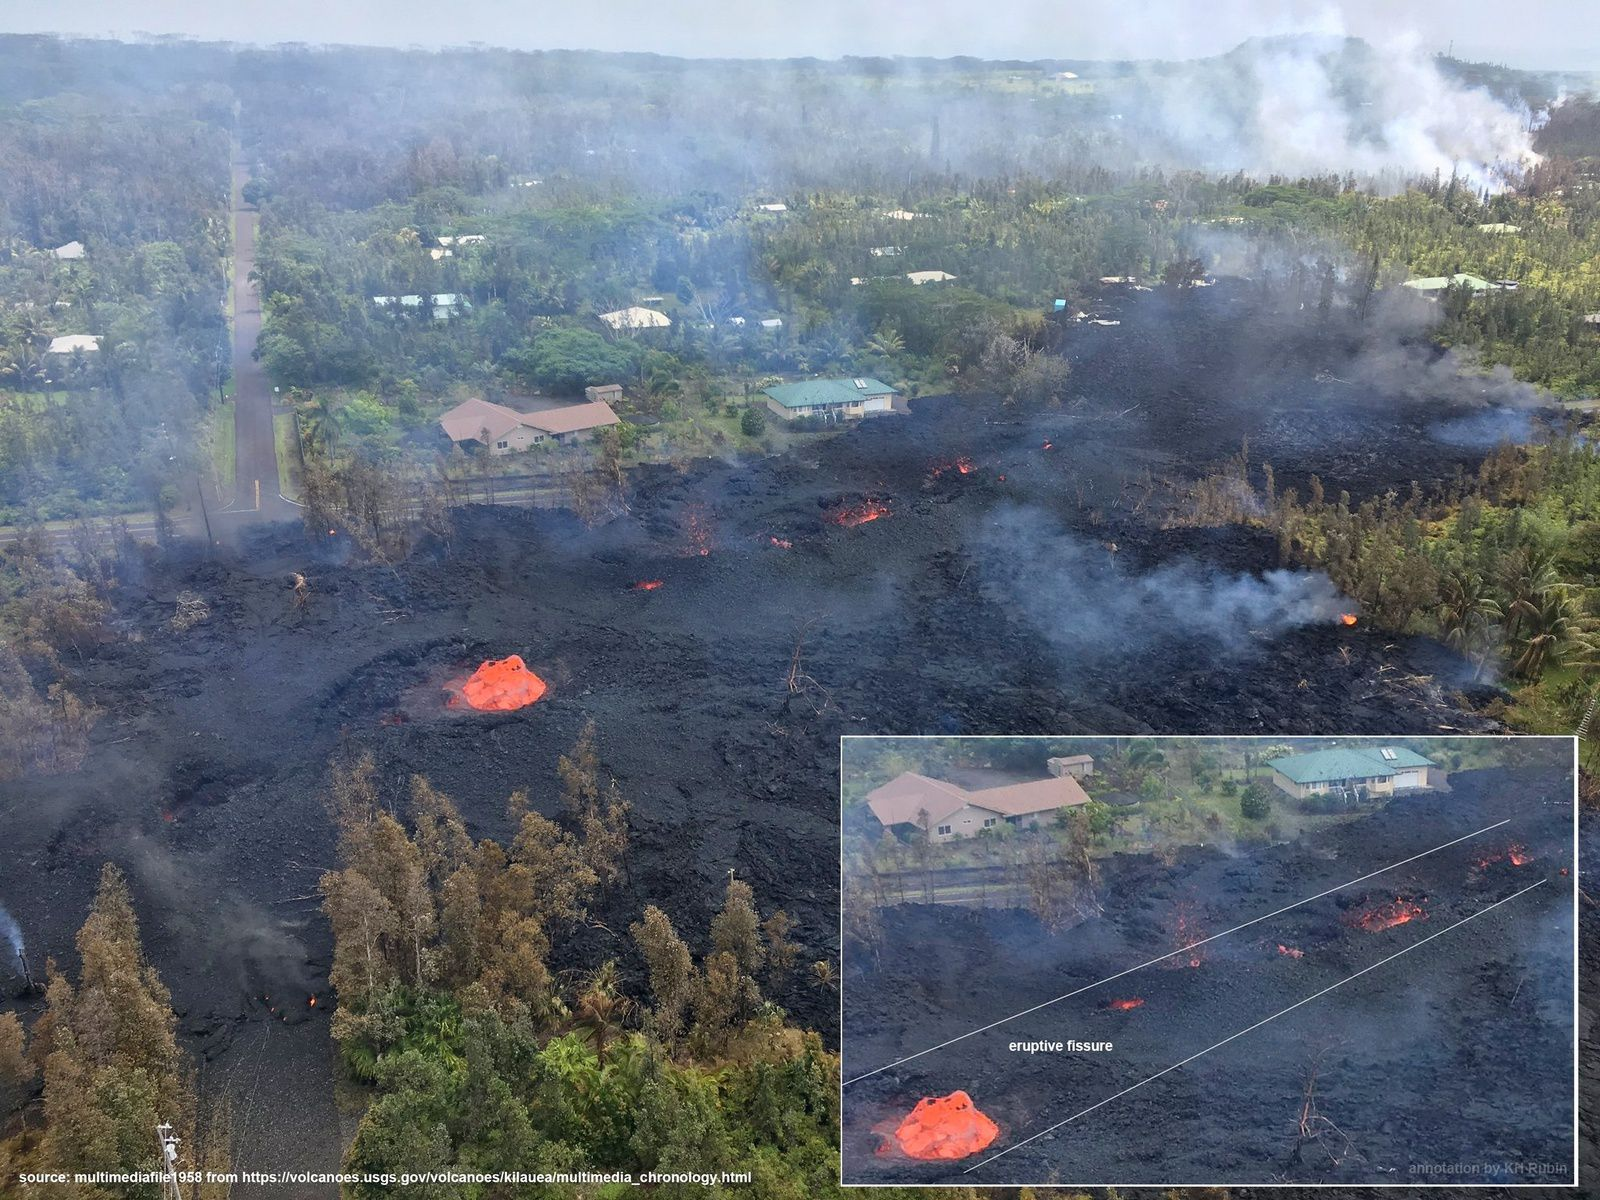 Kilauea East Rift Zone - view of the crack # 7 at 180 ° to the previous photo (identify the houses) showing in the inset the linearity of the crack - photo USGS